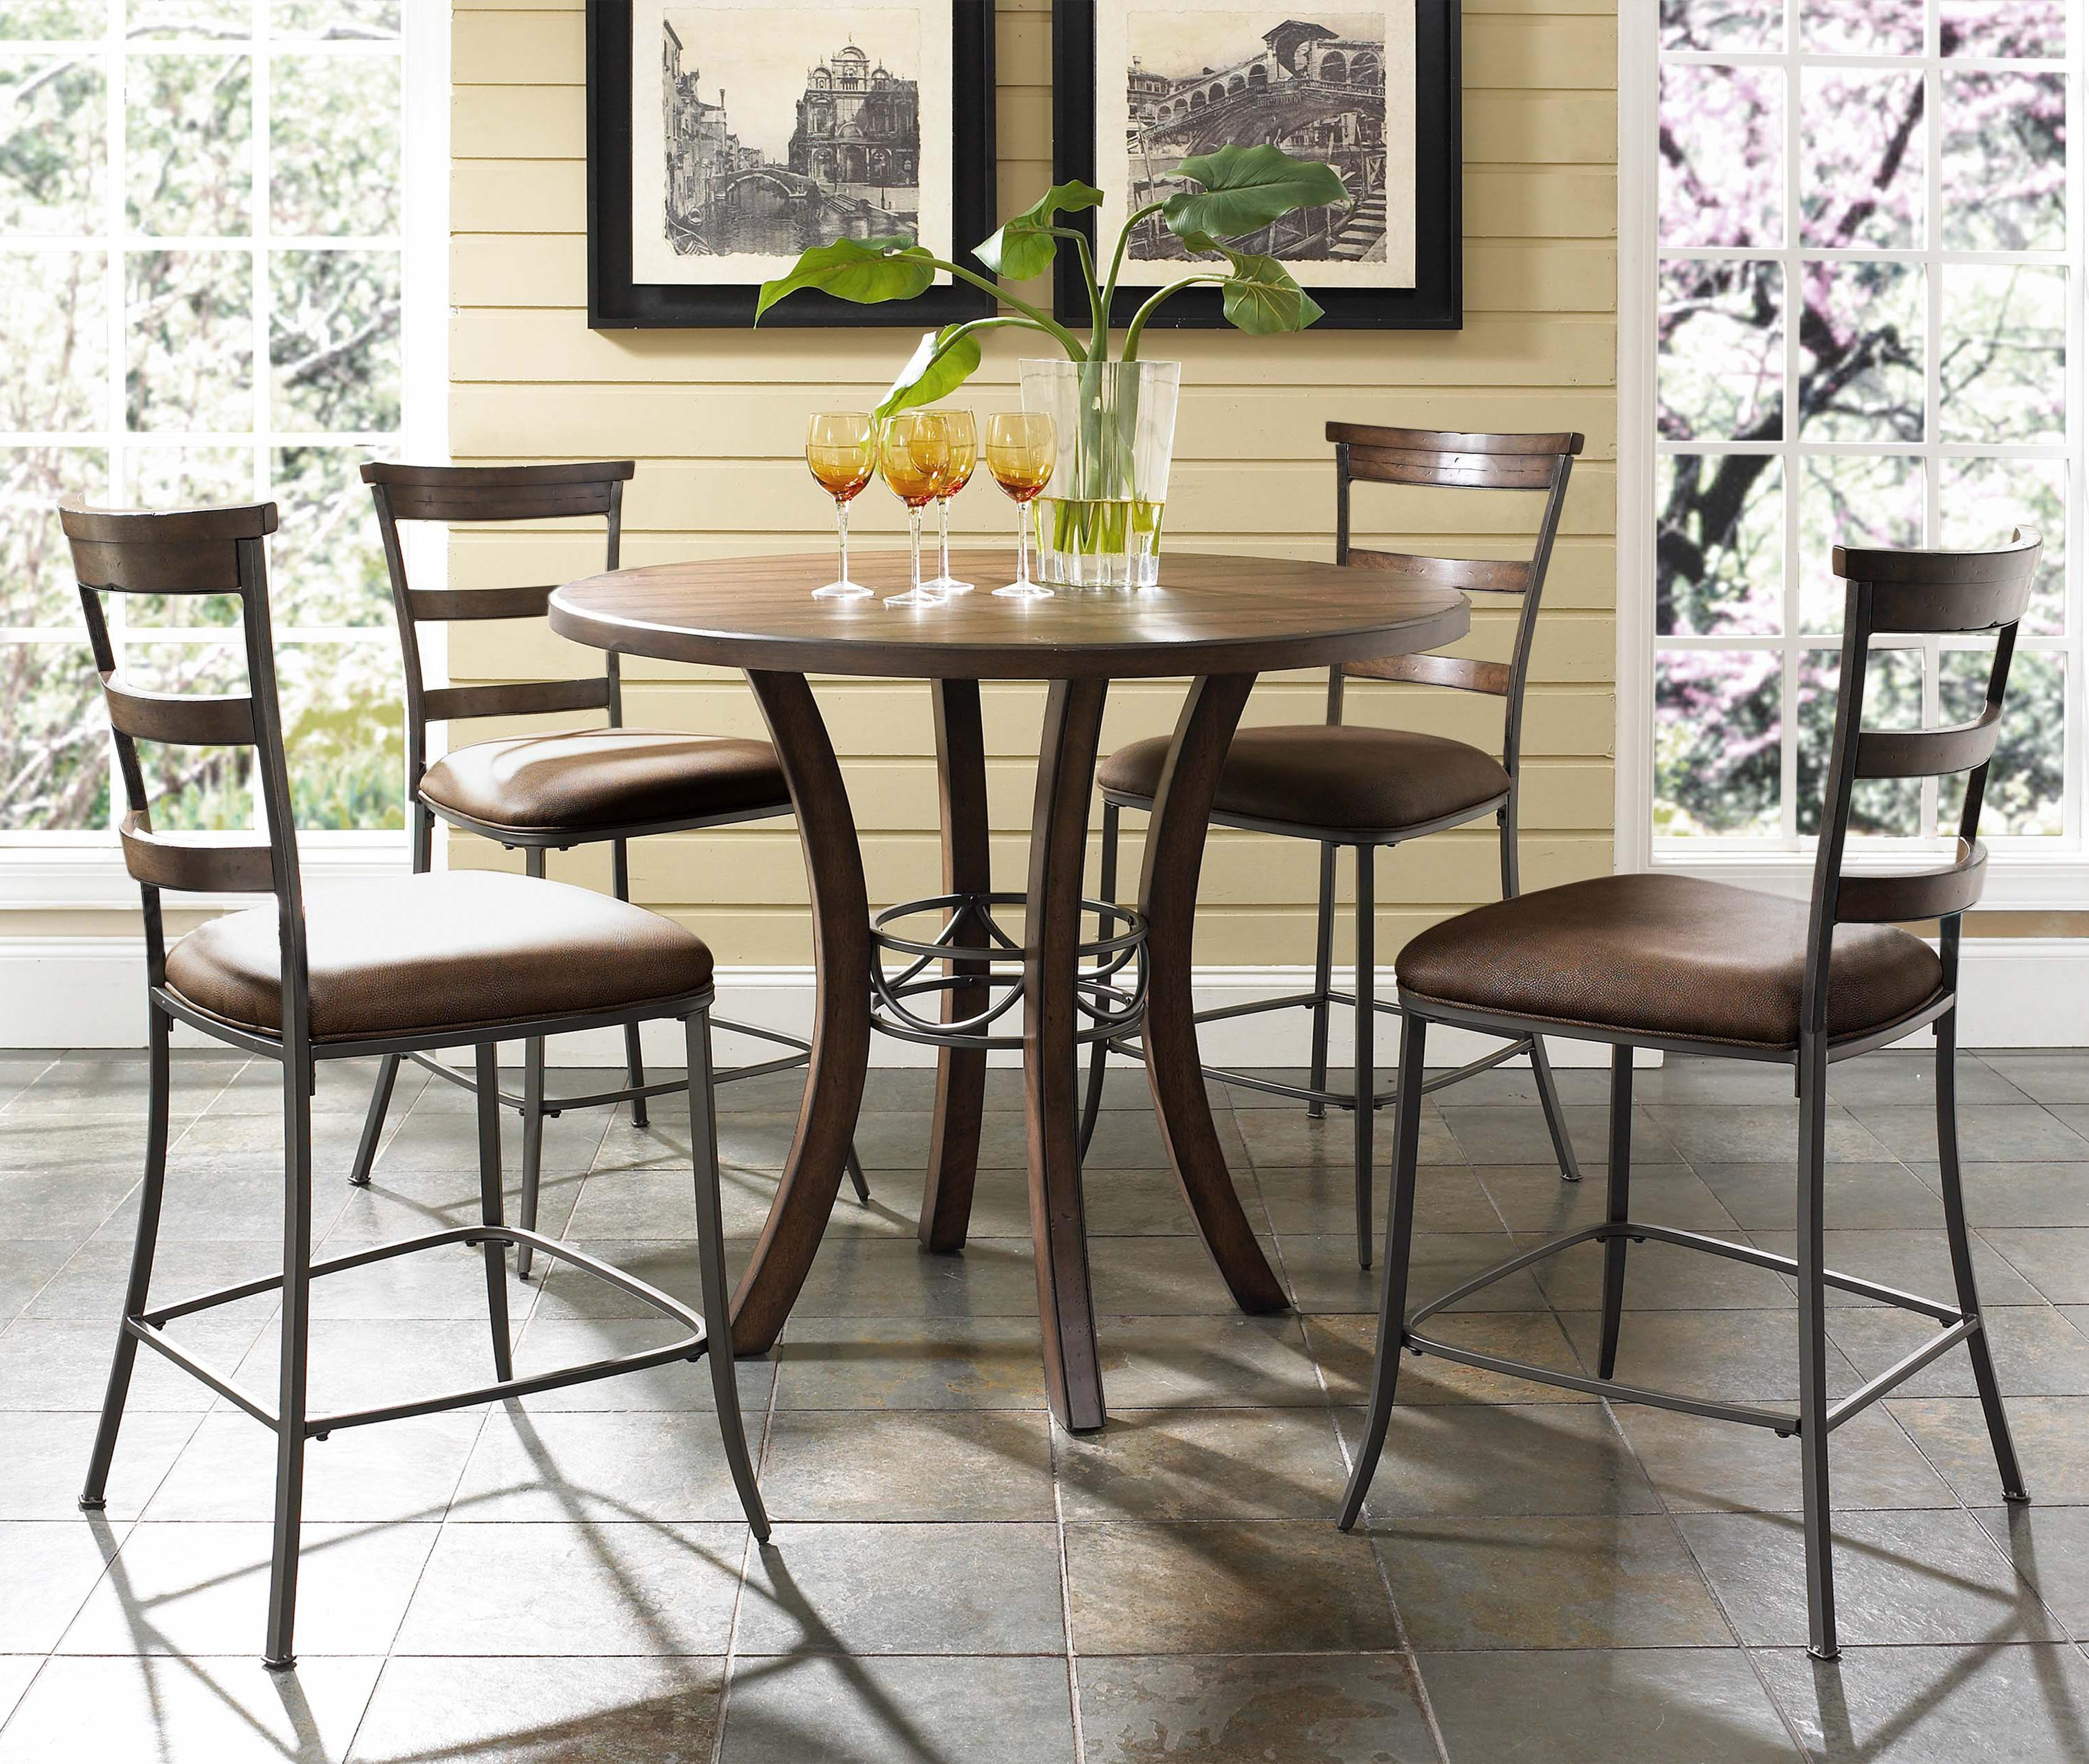 5 Piece Round Counter Height Table & Ladder Back Stools Set by